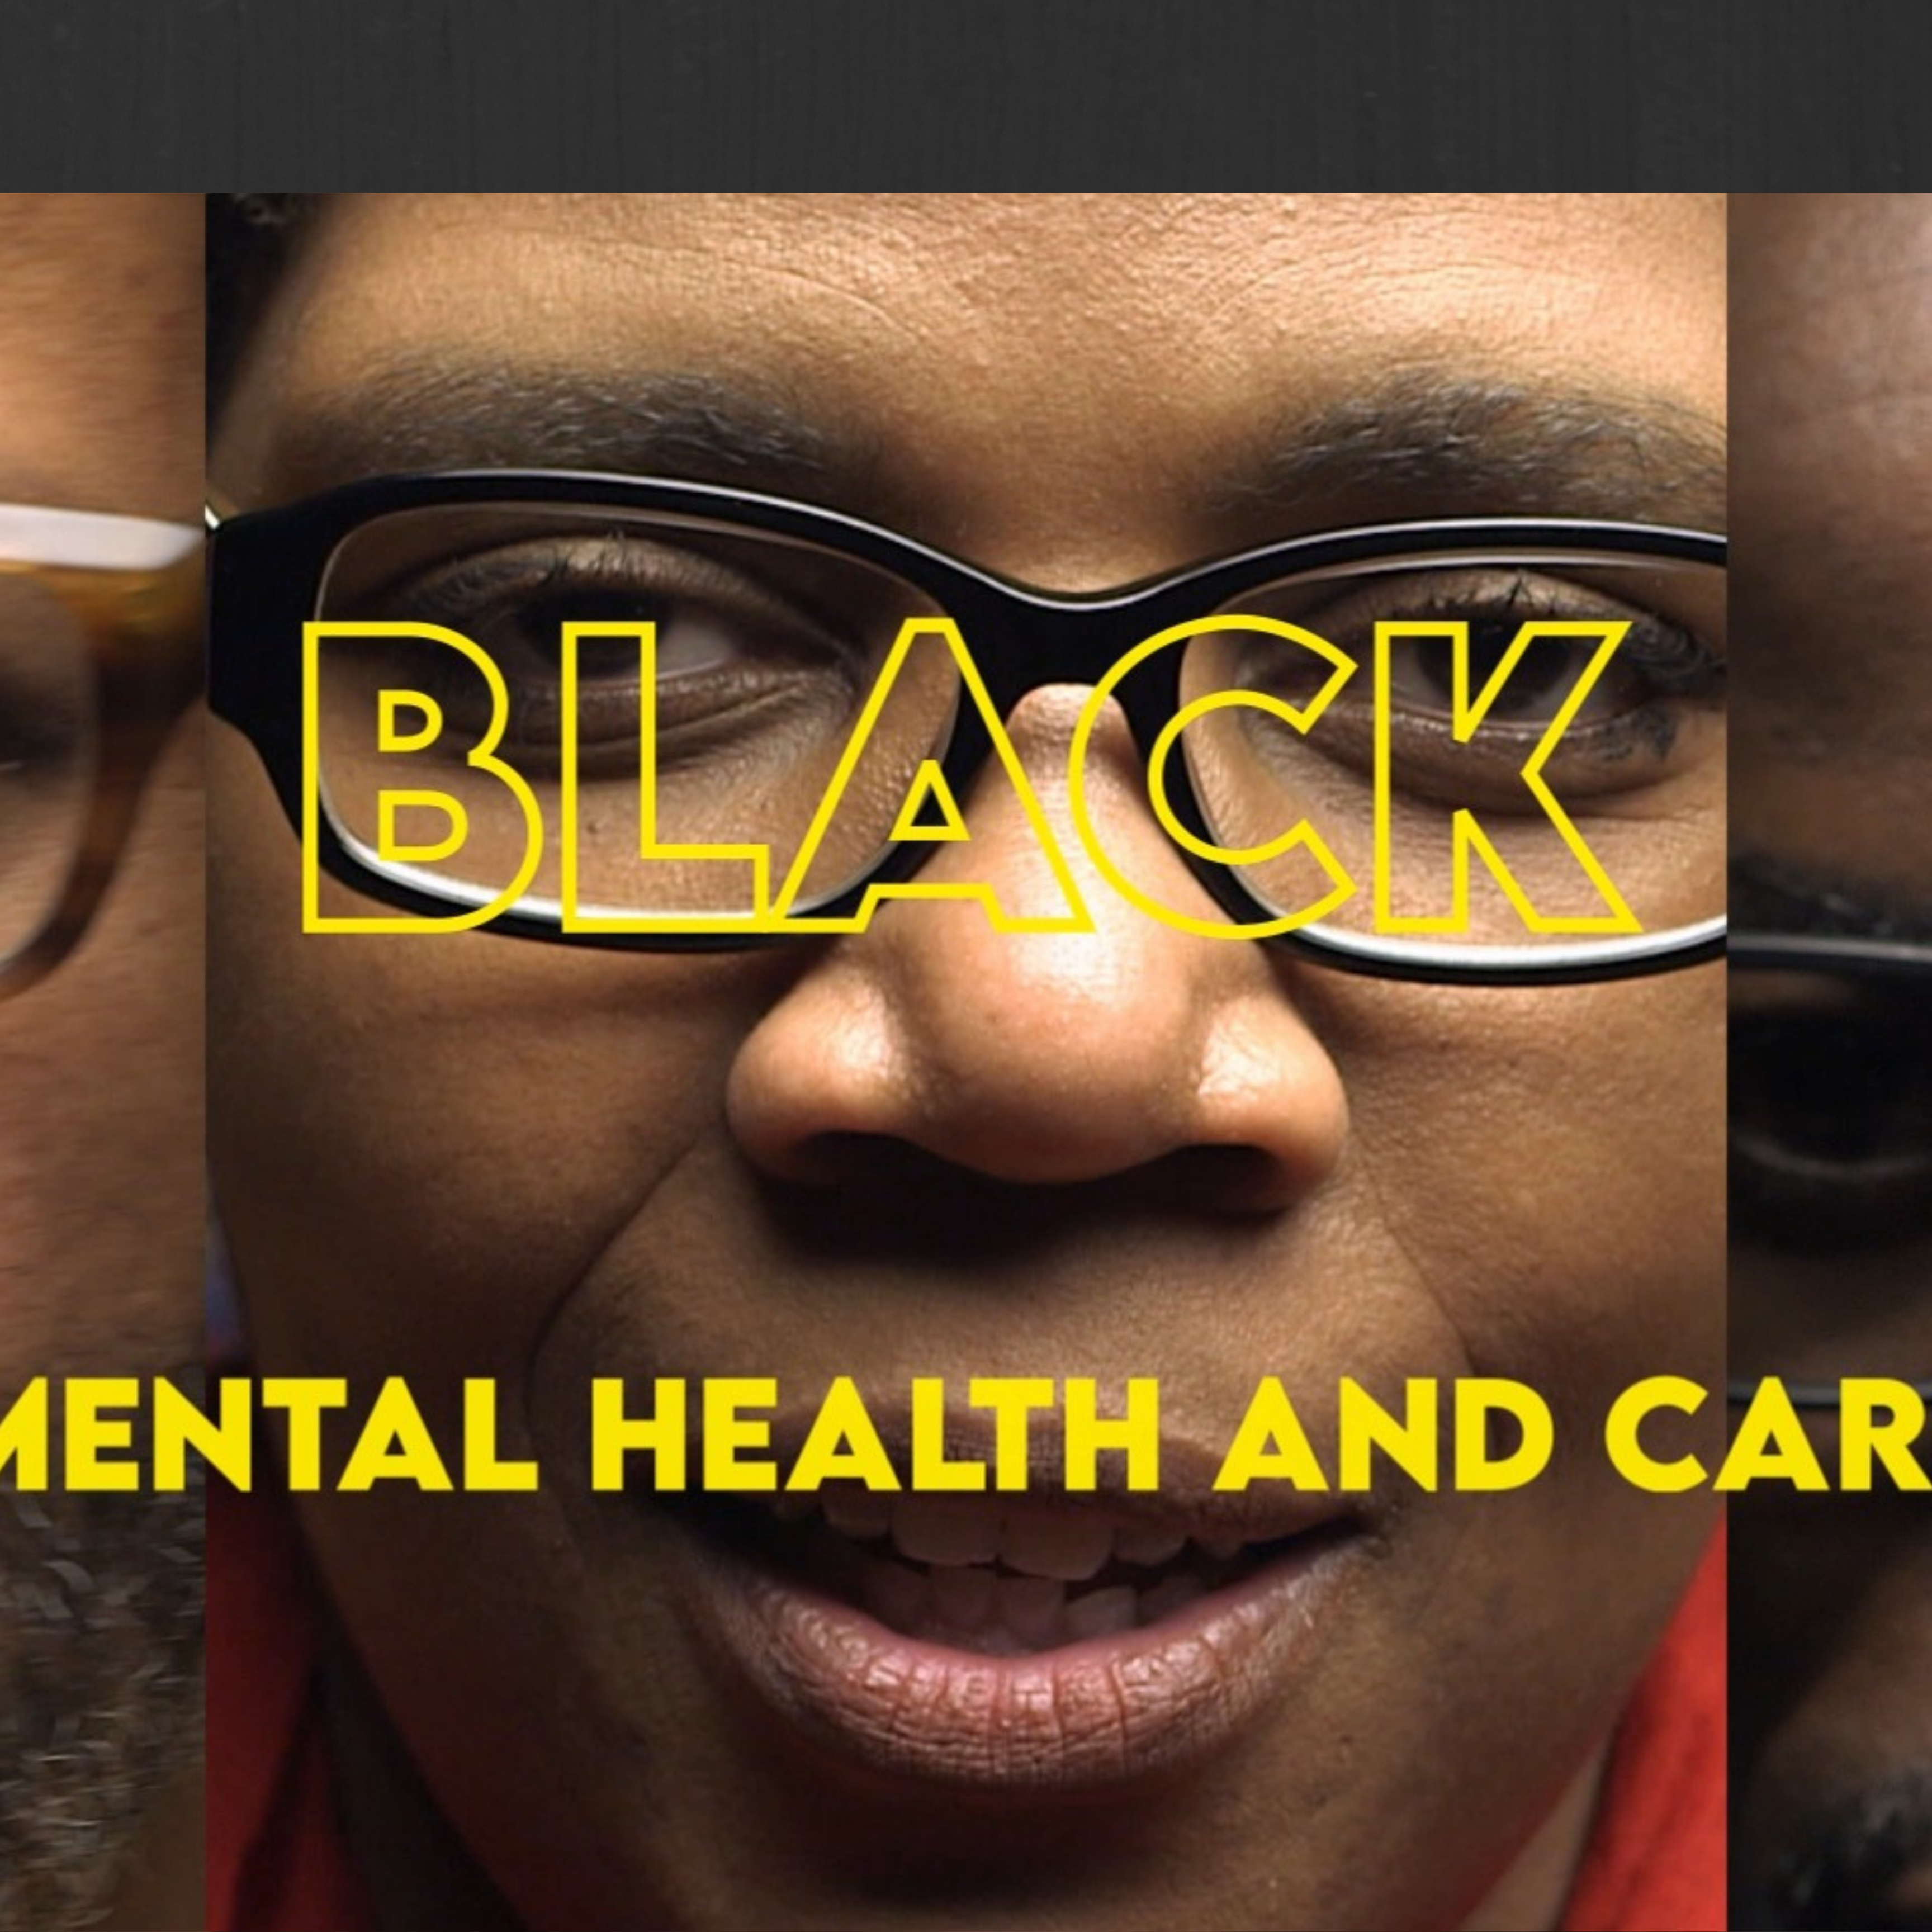 Black Mental Health and Care banner